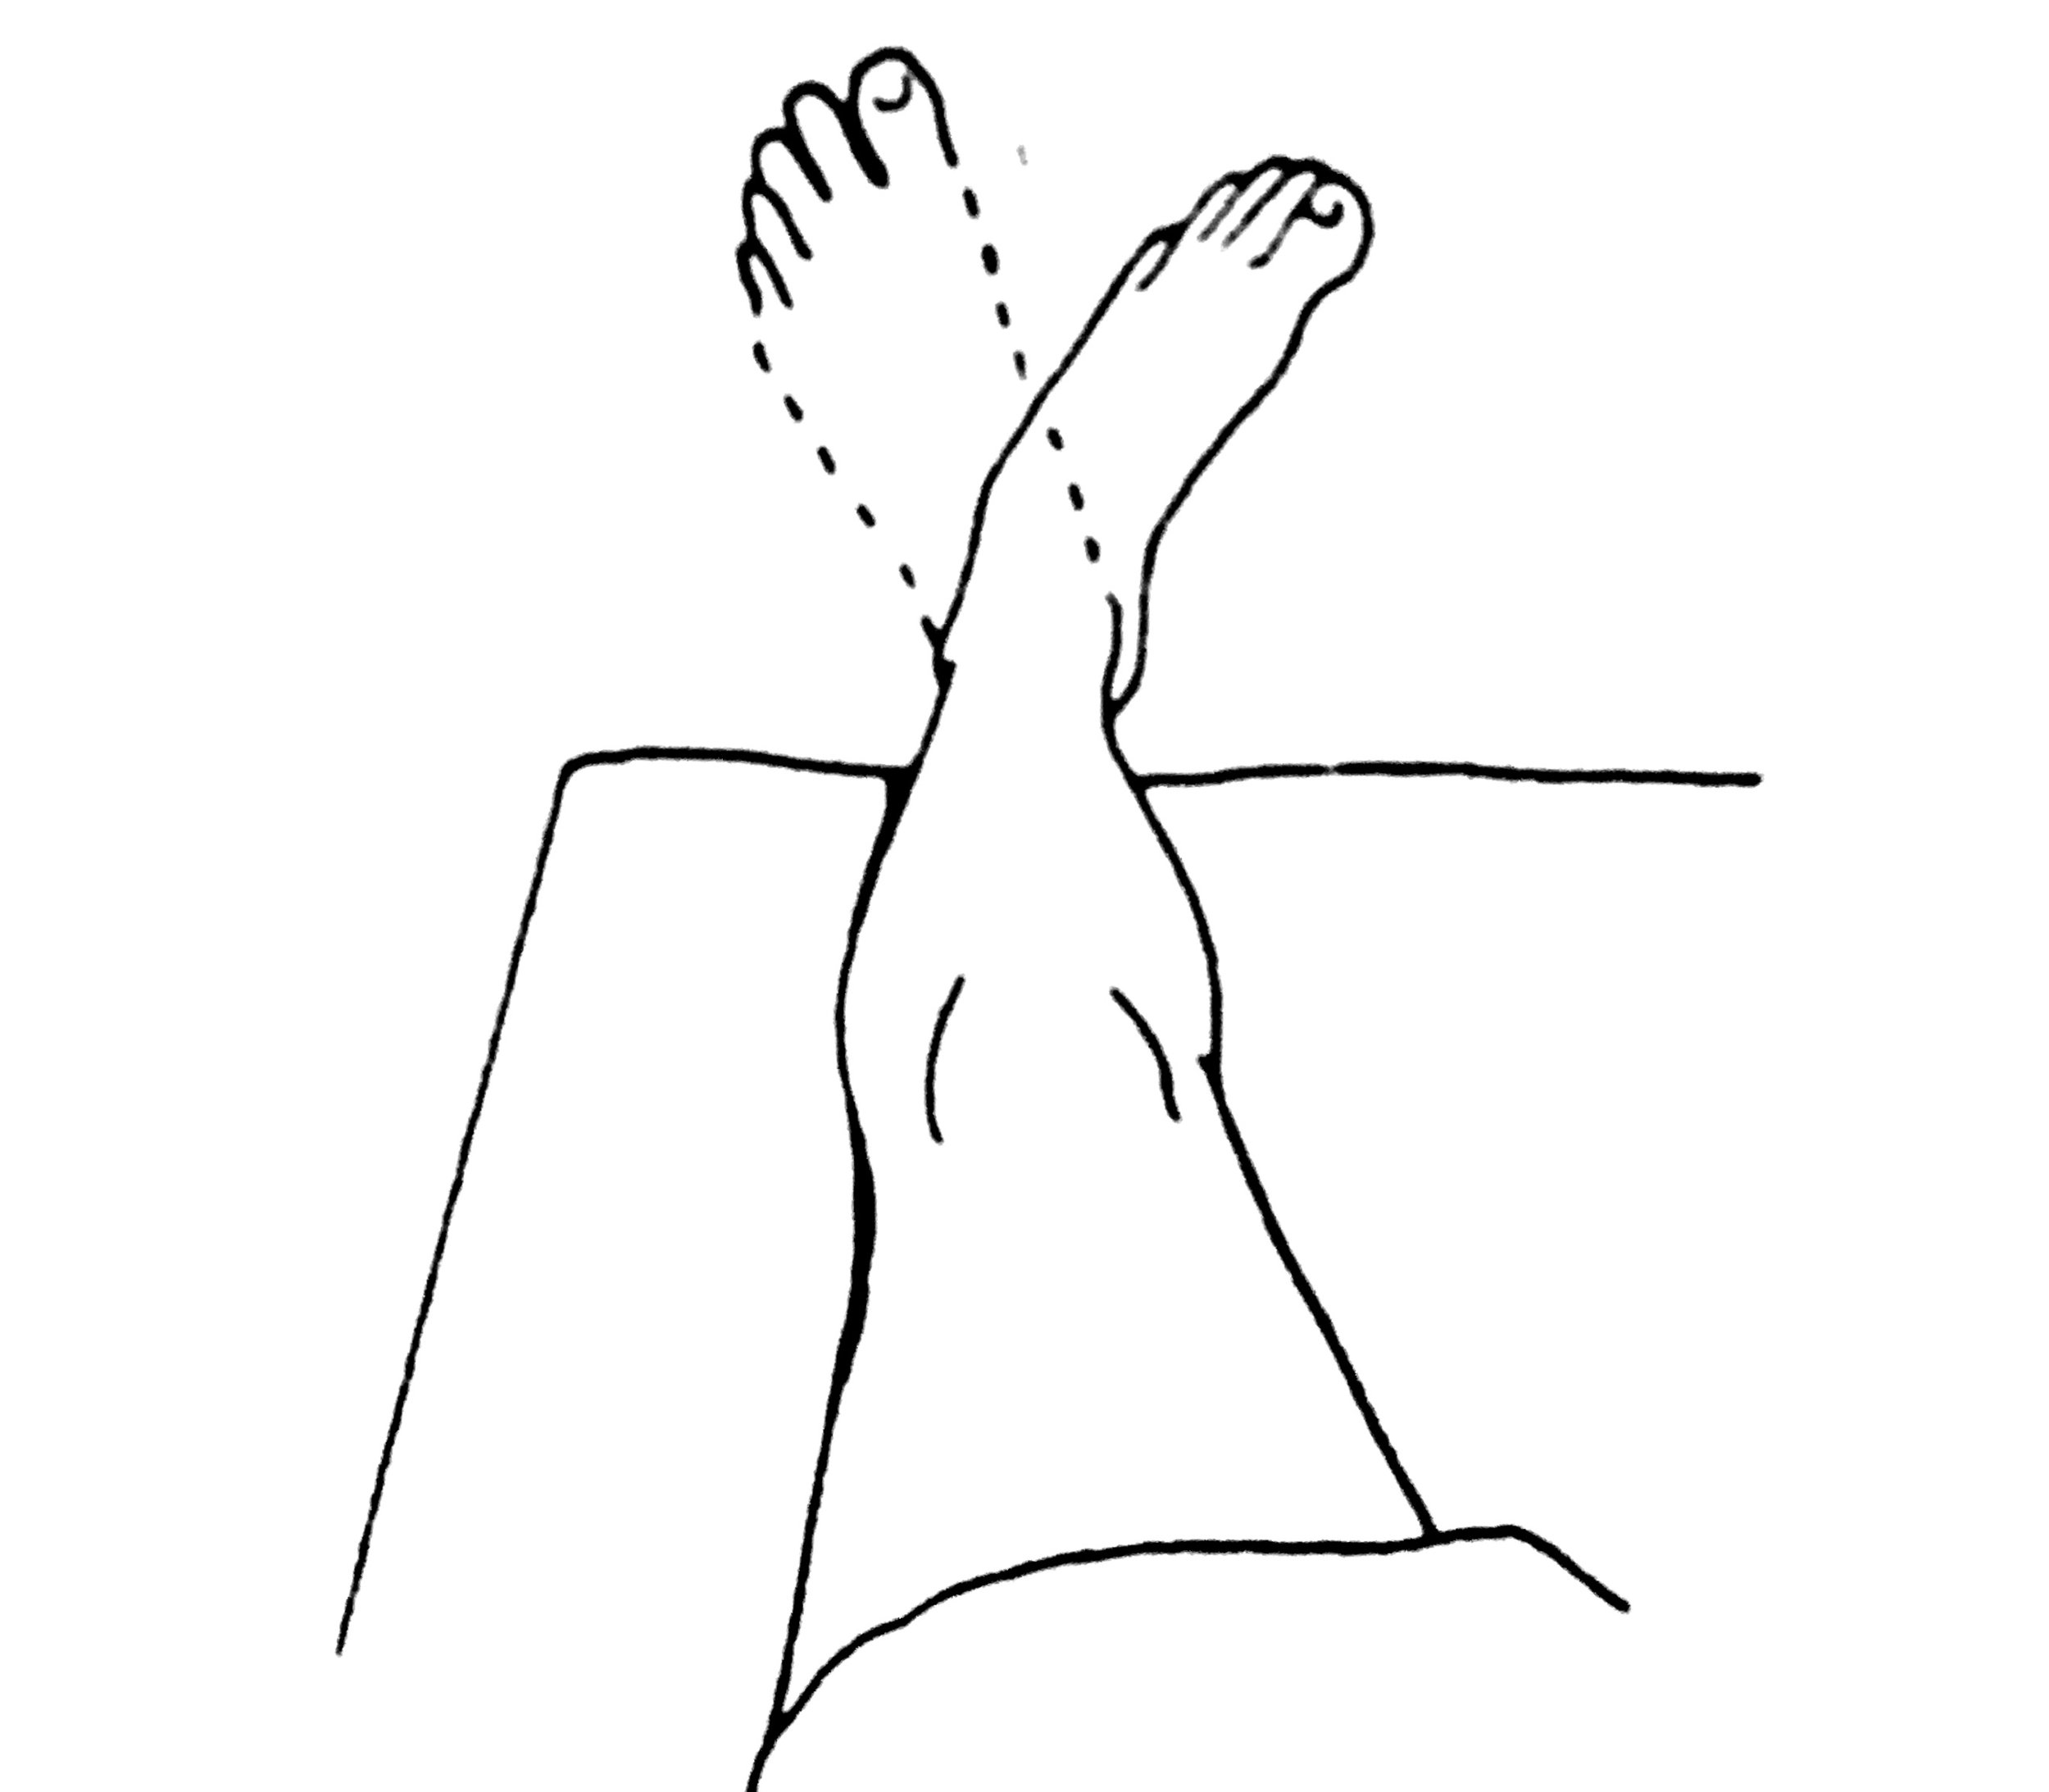 With leg relaxed, gently turn ankle/foot in and out. Move through full range of motion. Avoid pain. Repeat several times a few times a day.